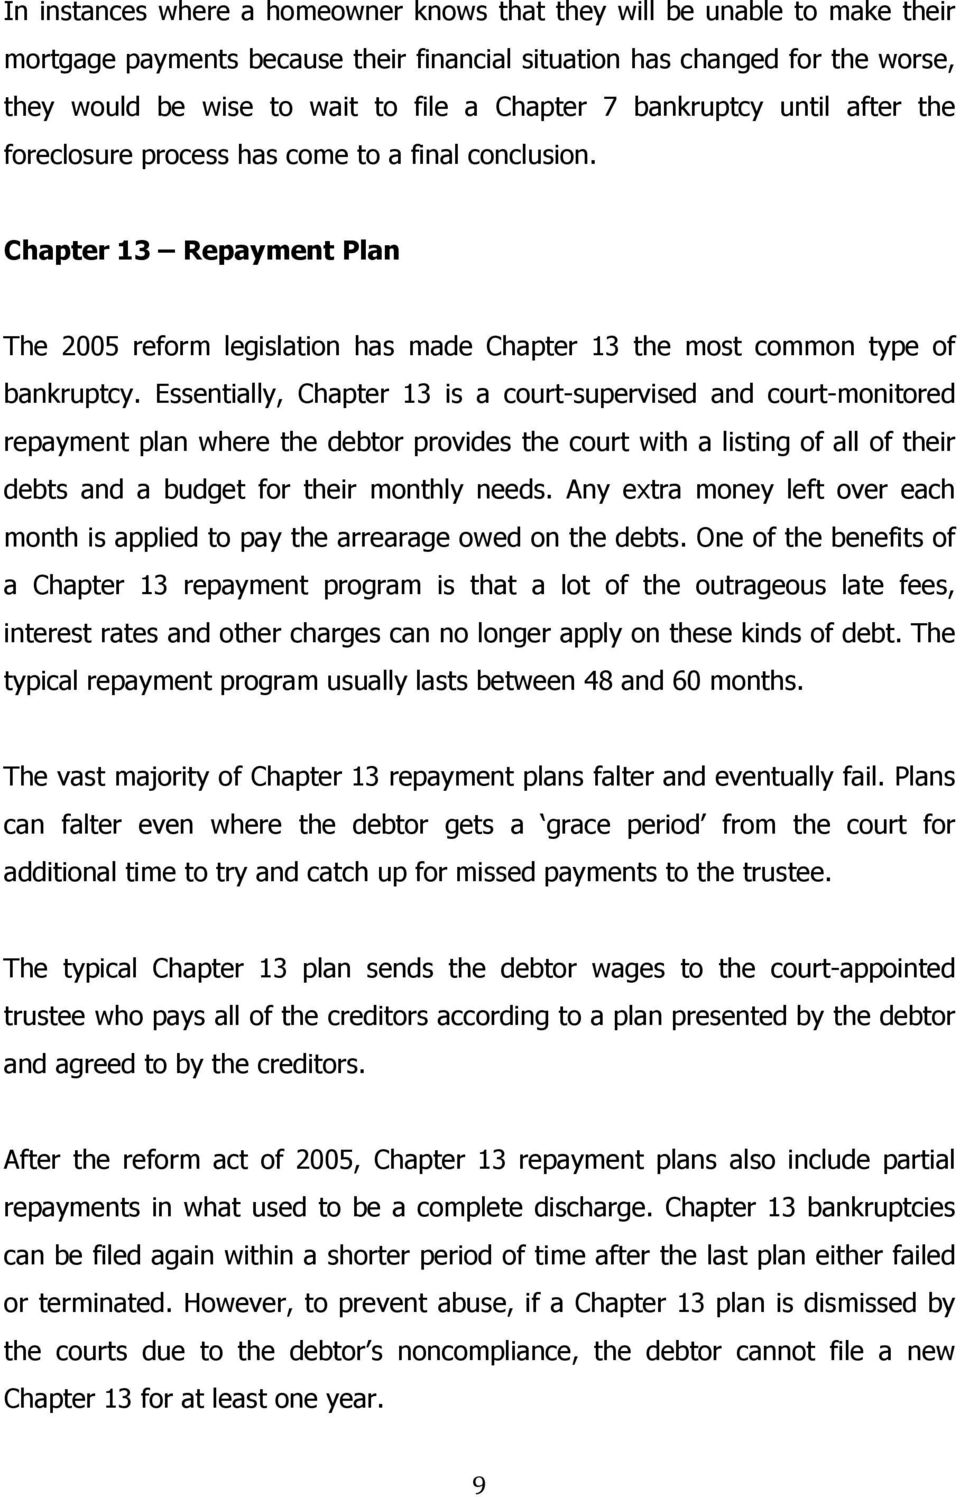 Essentially, Chapter 13 is a court-supervised and court-monitored repayment plan where the debtor provides the court with a listing of all of their debts and a budget for their monthly needs.